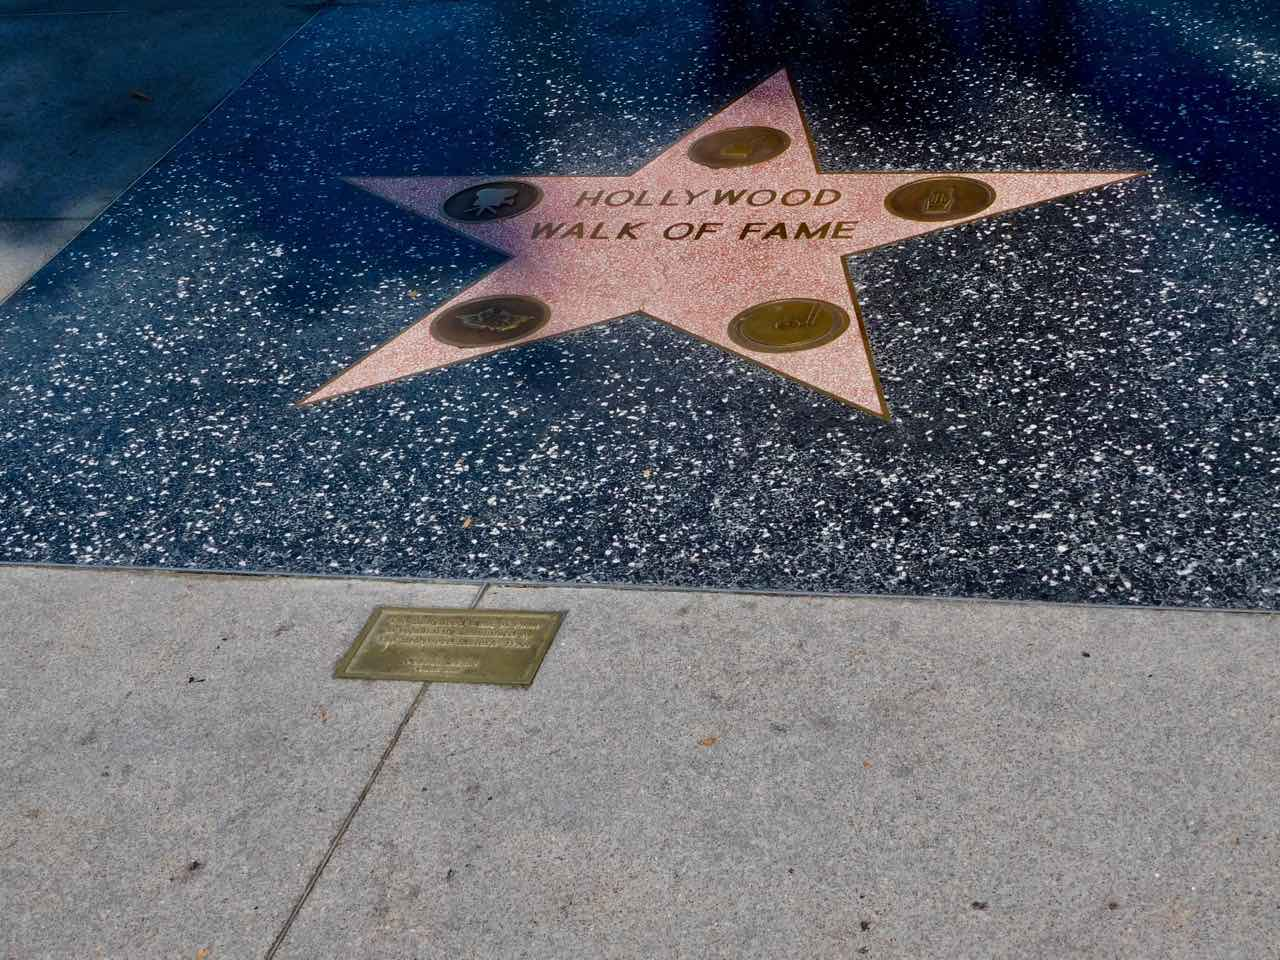 3 Days in L.A. - Walk of Fame